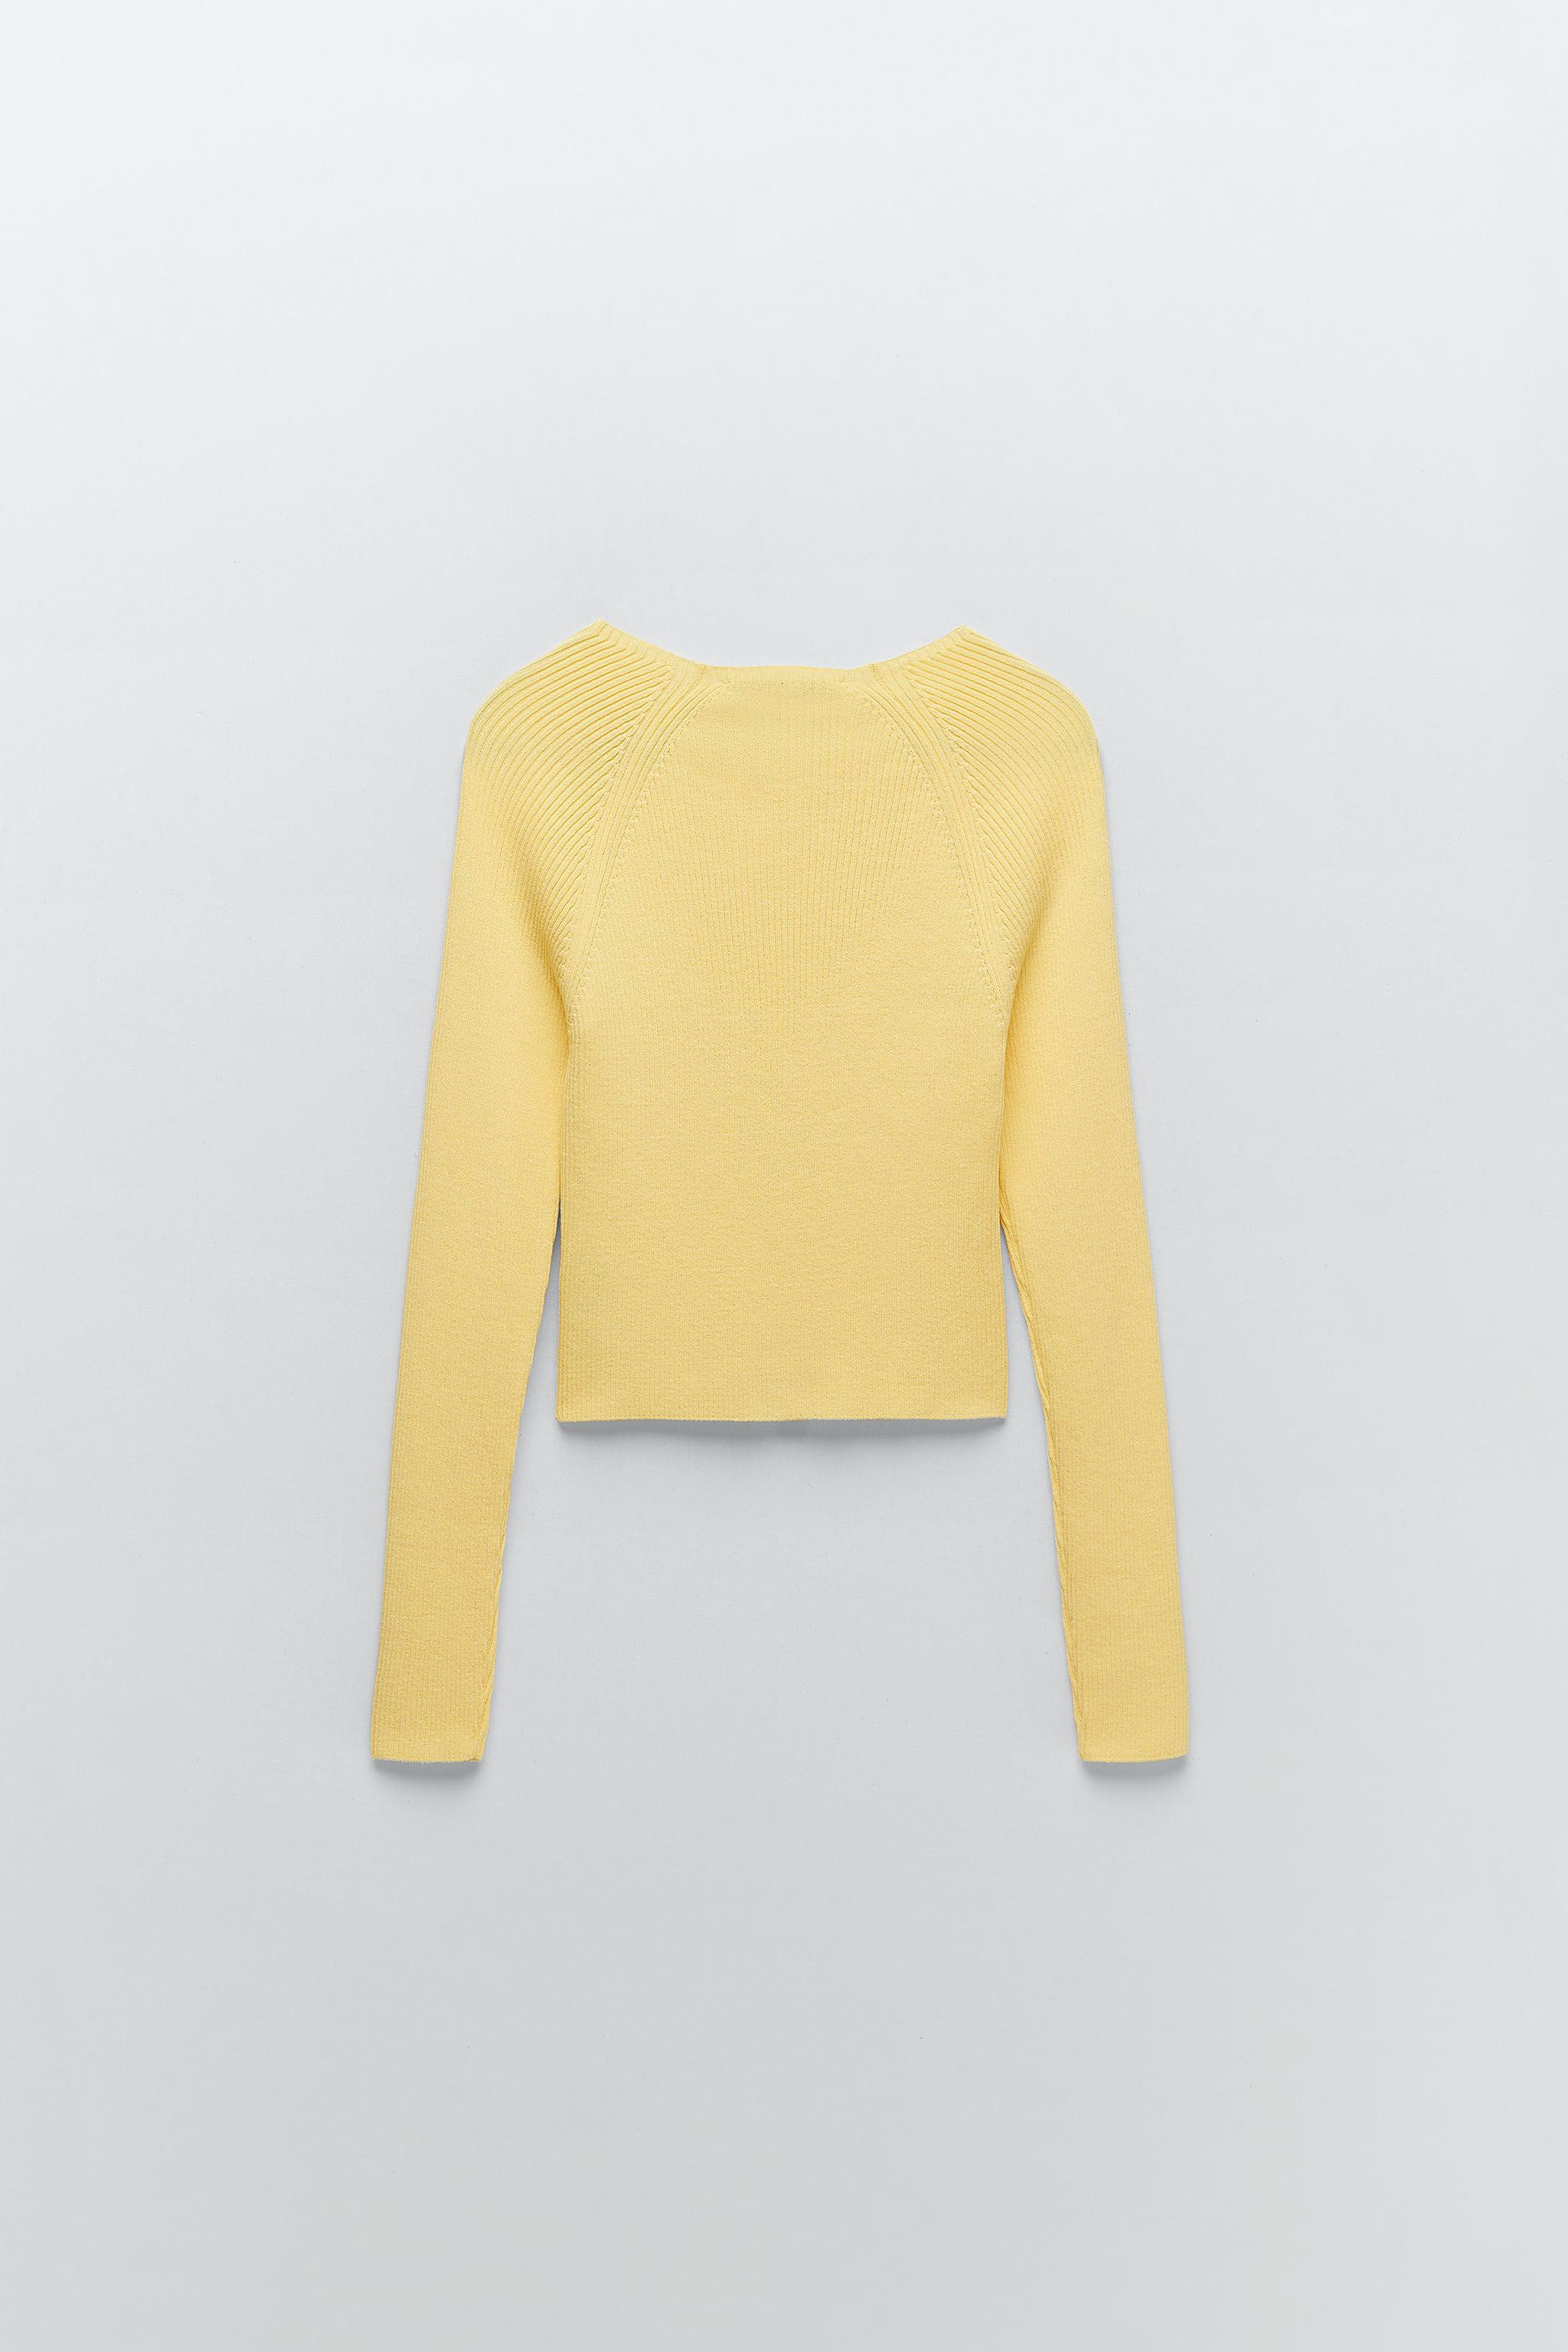 KNIT SWEATER WITH BUTTONS 6